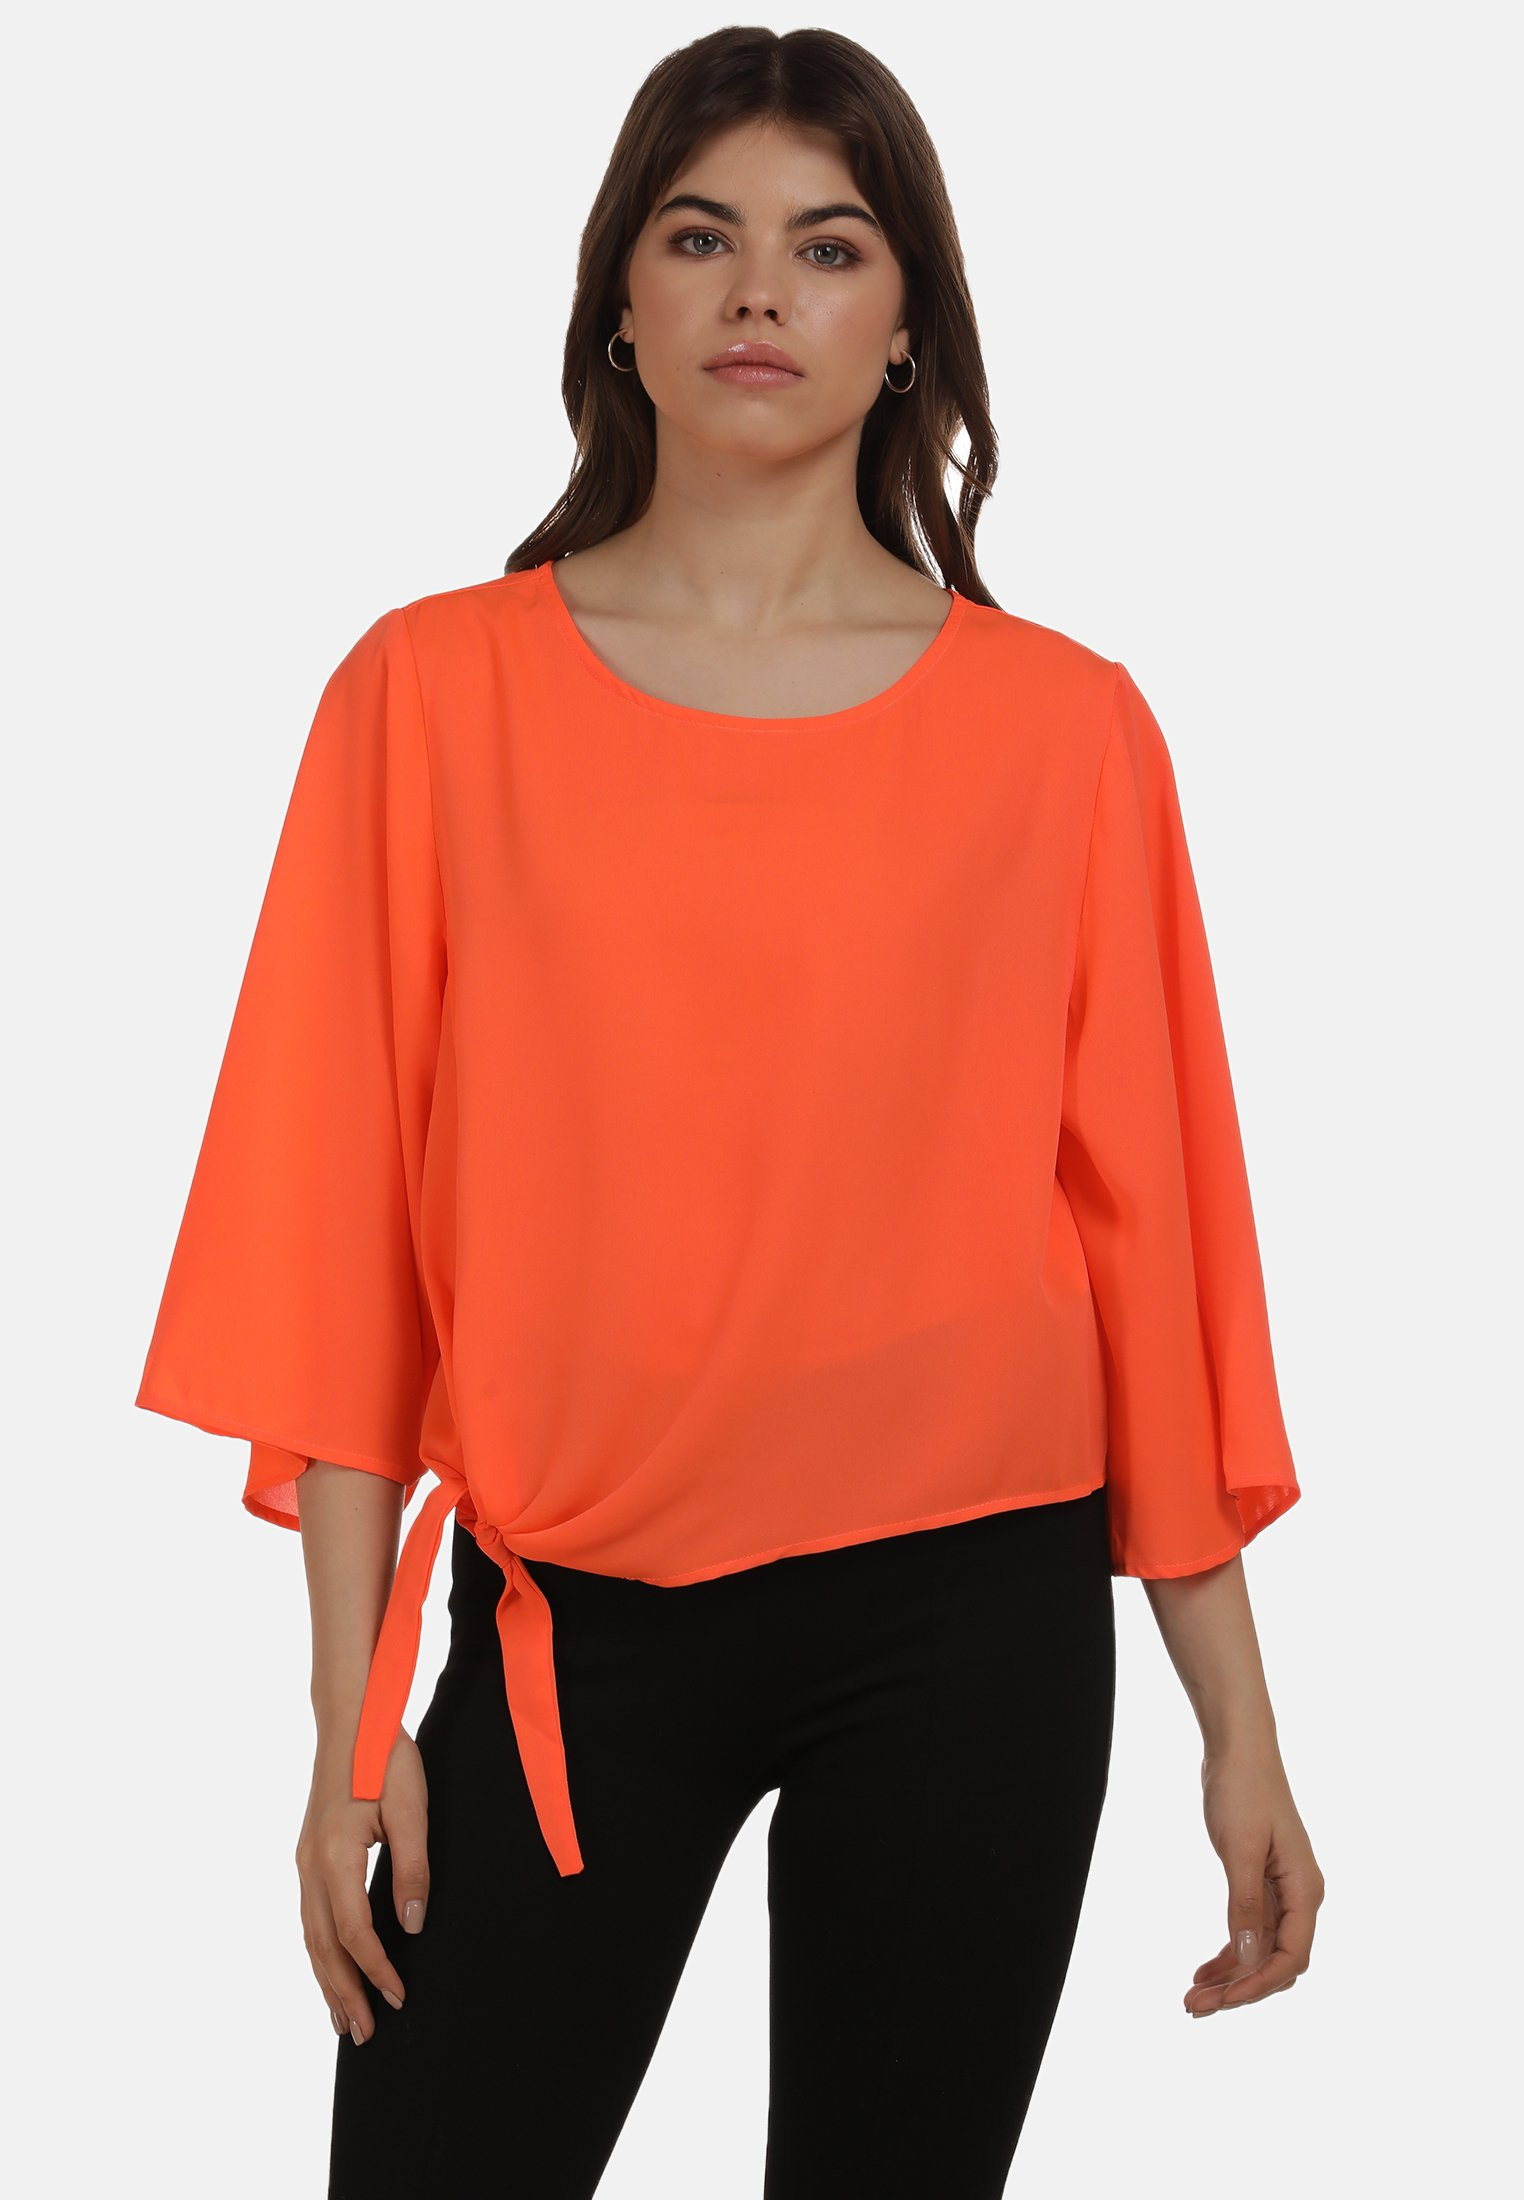 New Women's Clothing myMo Blouse neon orange W4D0uCh4S